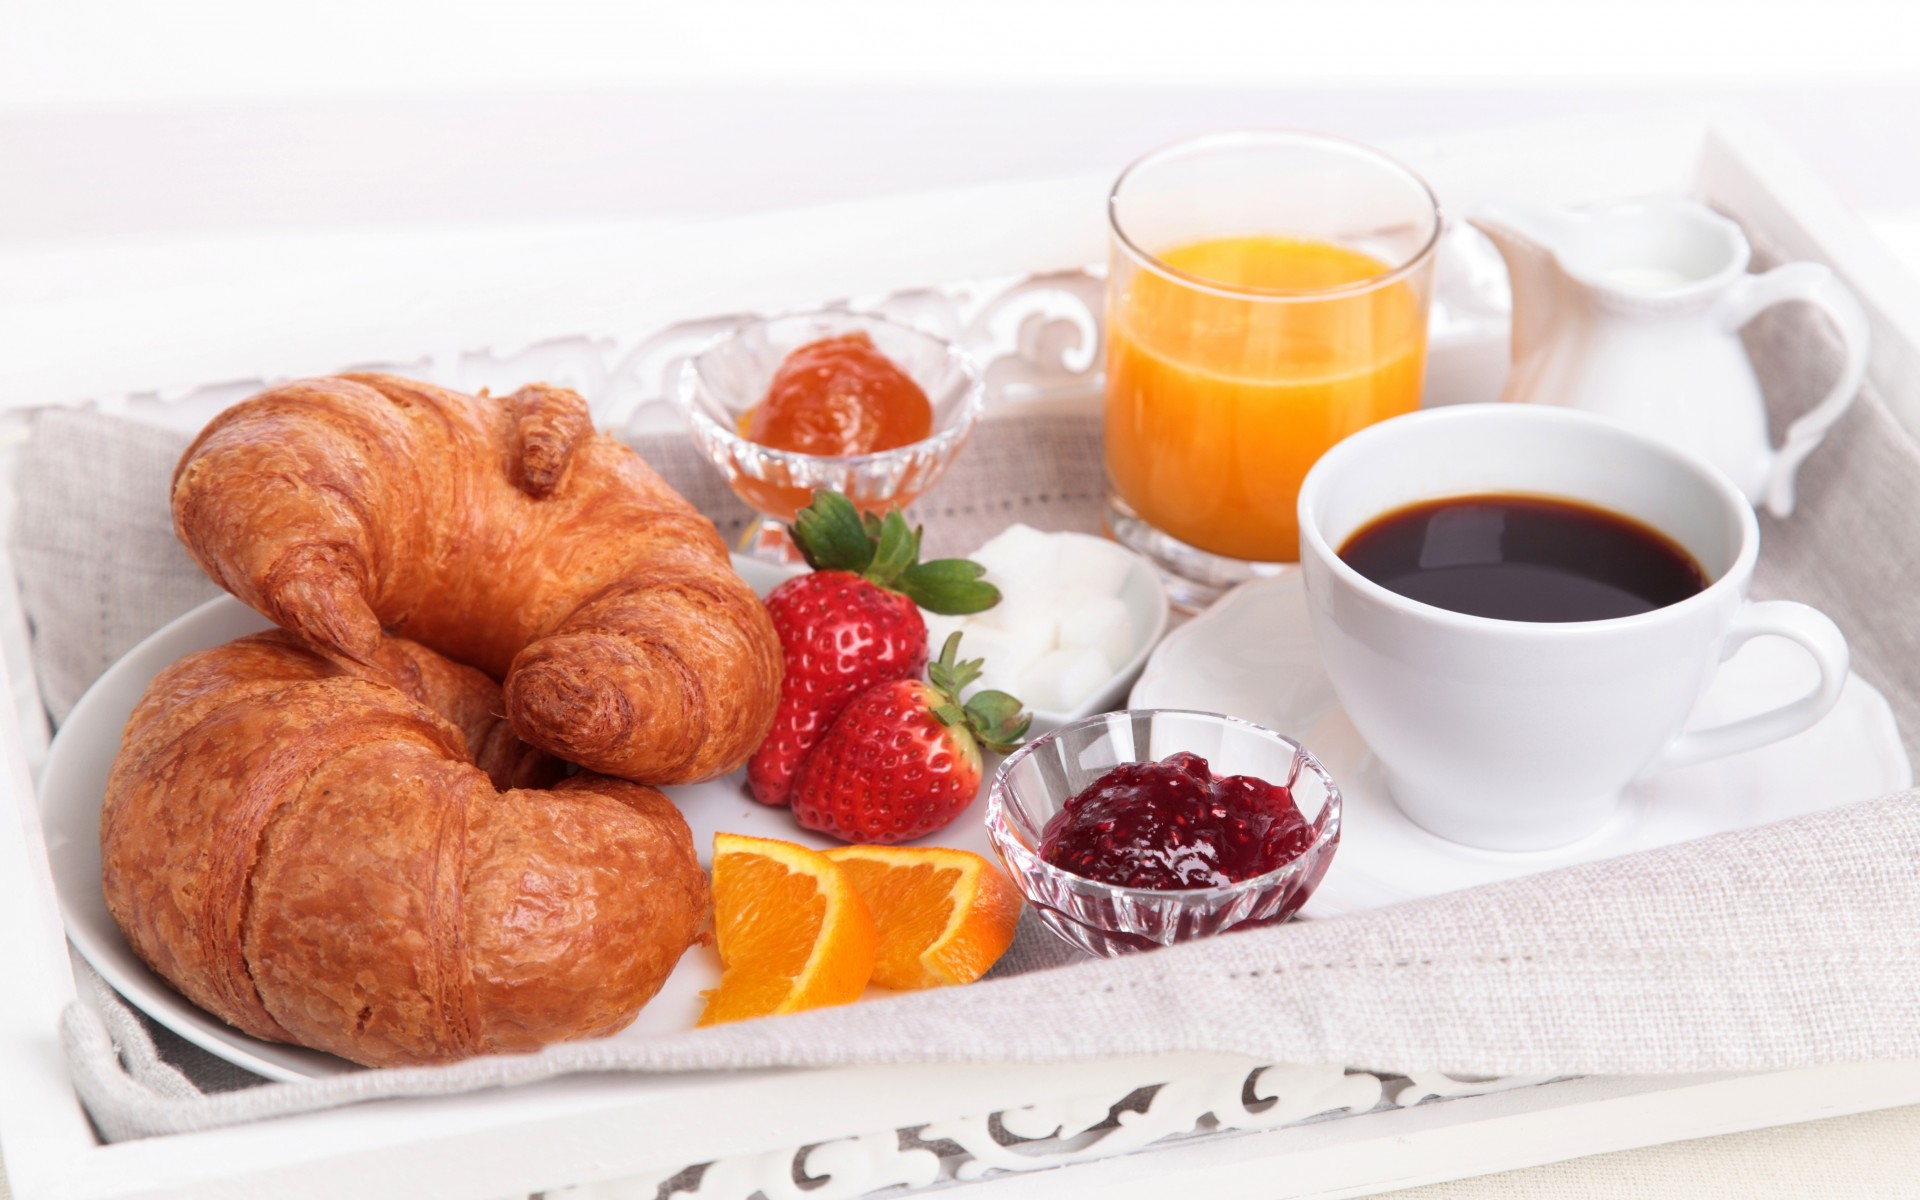 nice_rounded_breakfast_pastry_abstract_jam_hd-wallpaper-1371167